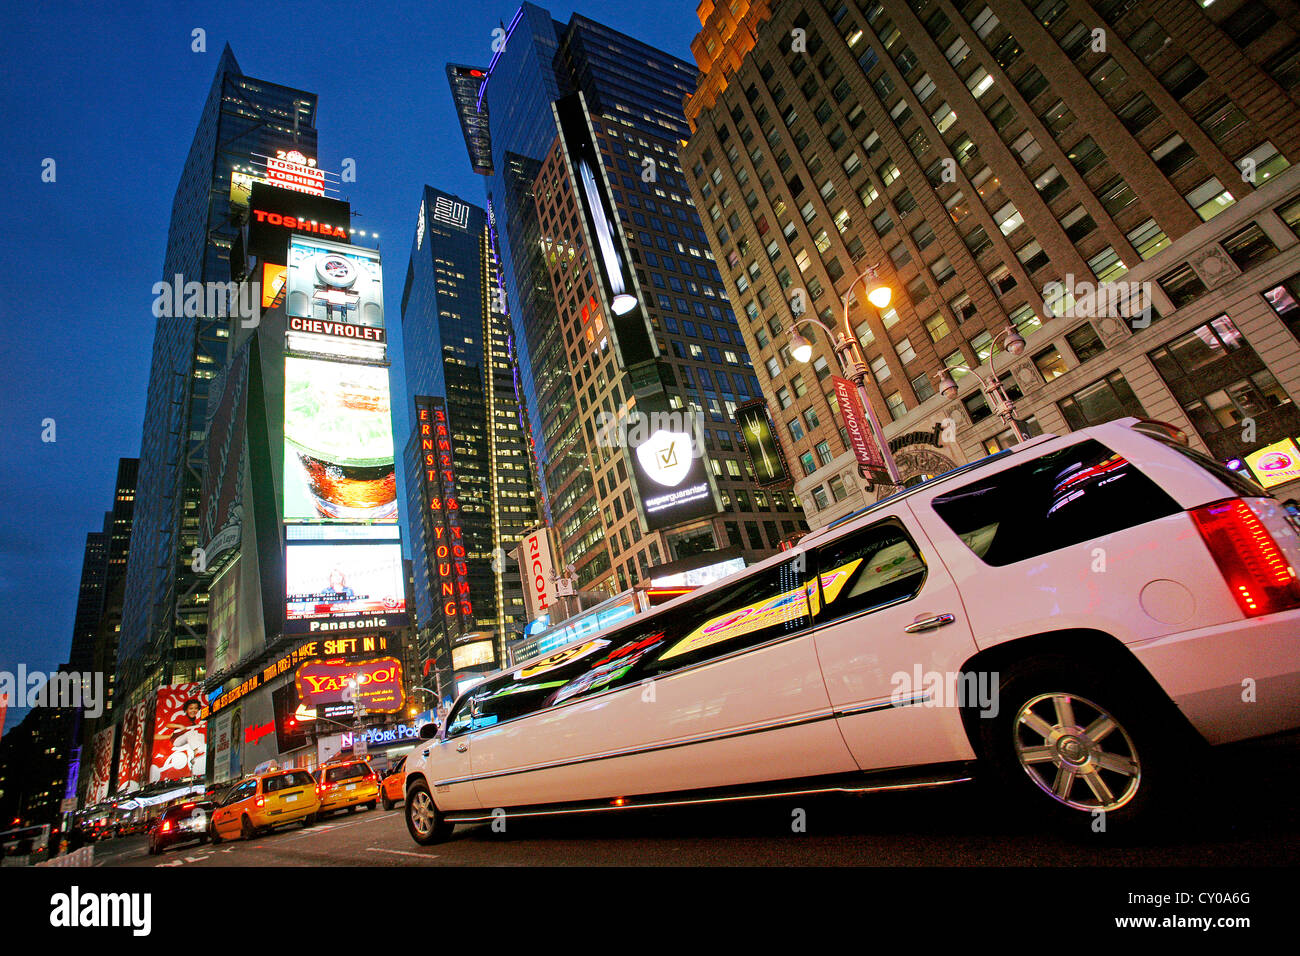 Limousine, Times Square at Night, New York City, New York, United States, North America - Stock Image